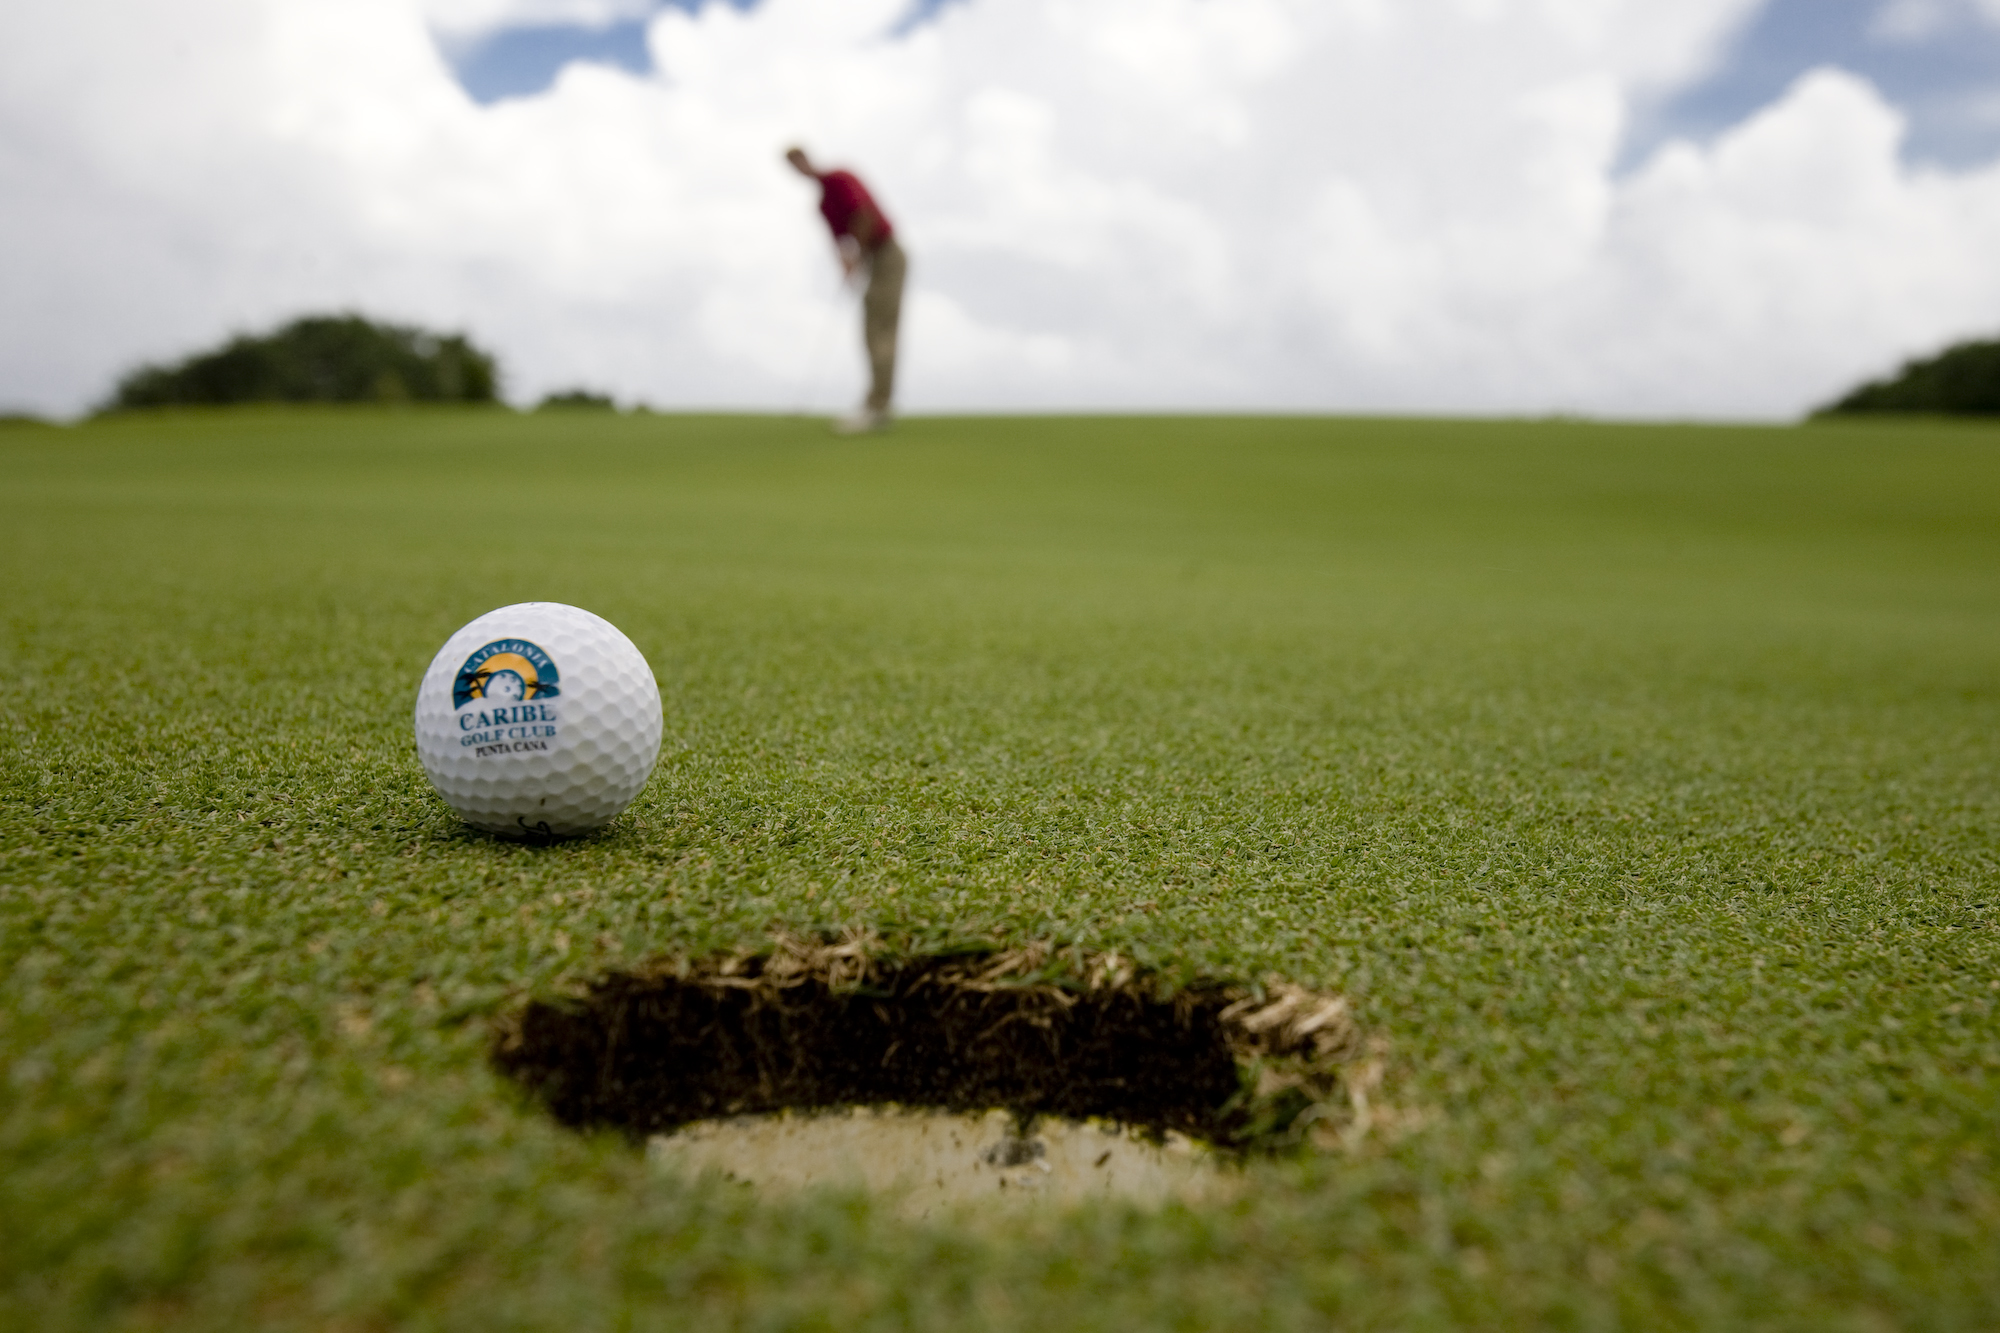 Catalonia-Caribe-Golf-Club_1.jpg